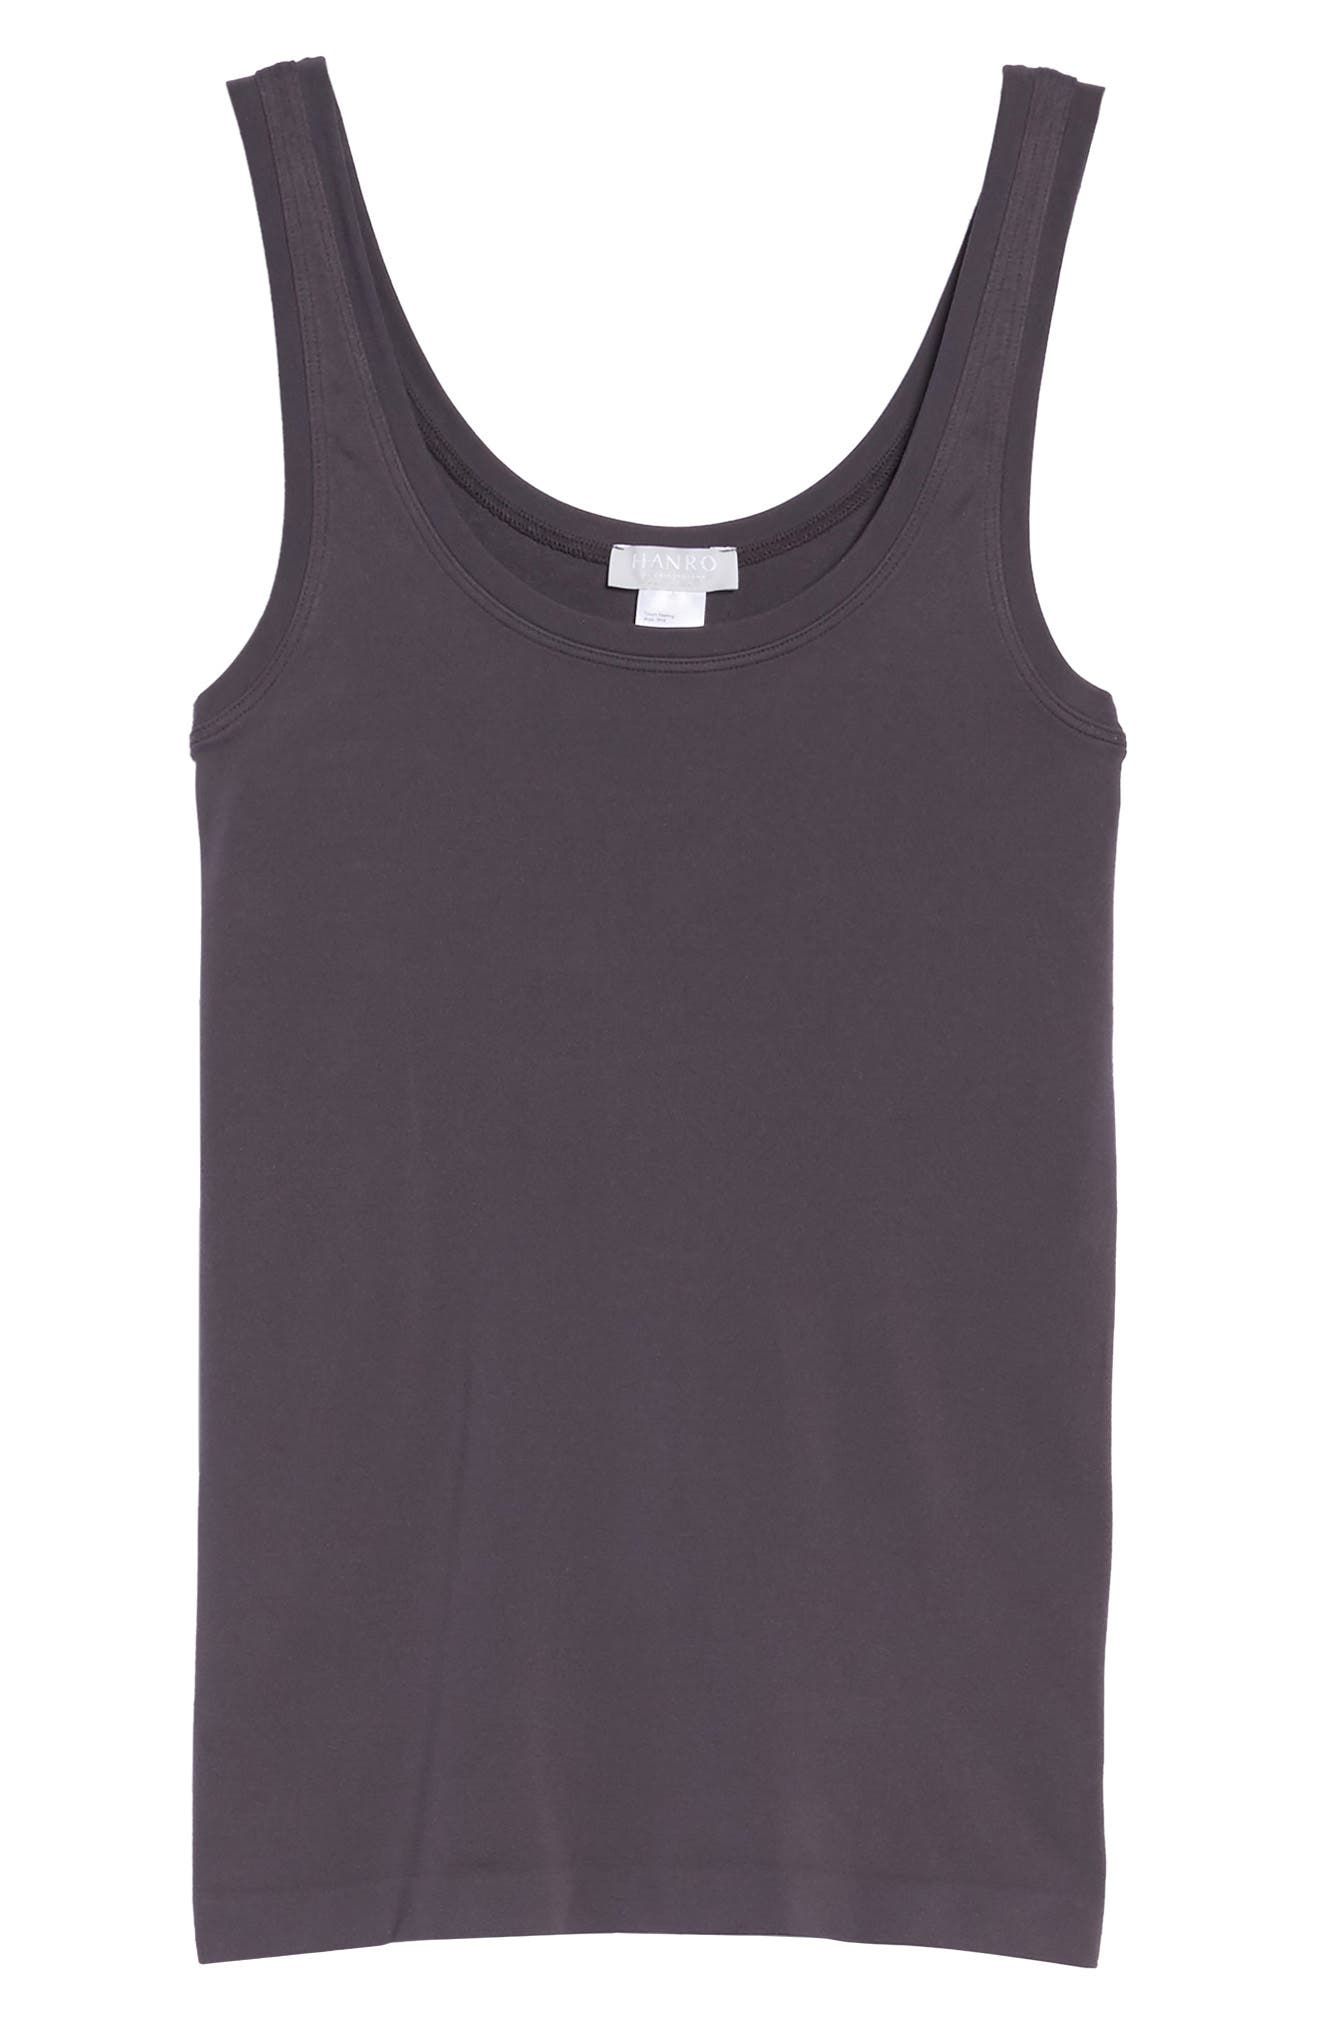 'Touch Feeling' Tank,                             Alternate thumbnail 6, color,                             Carbon